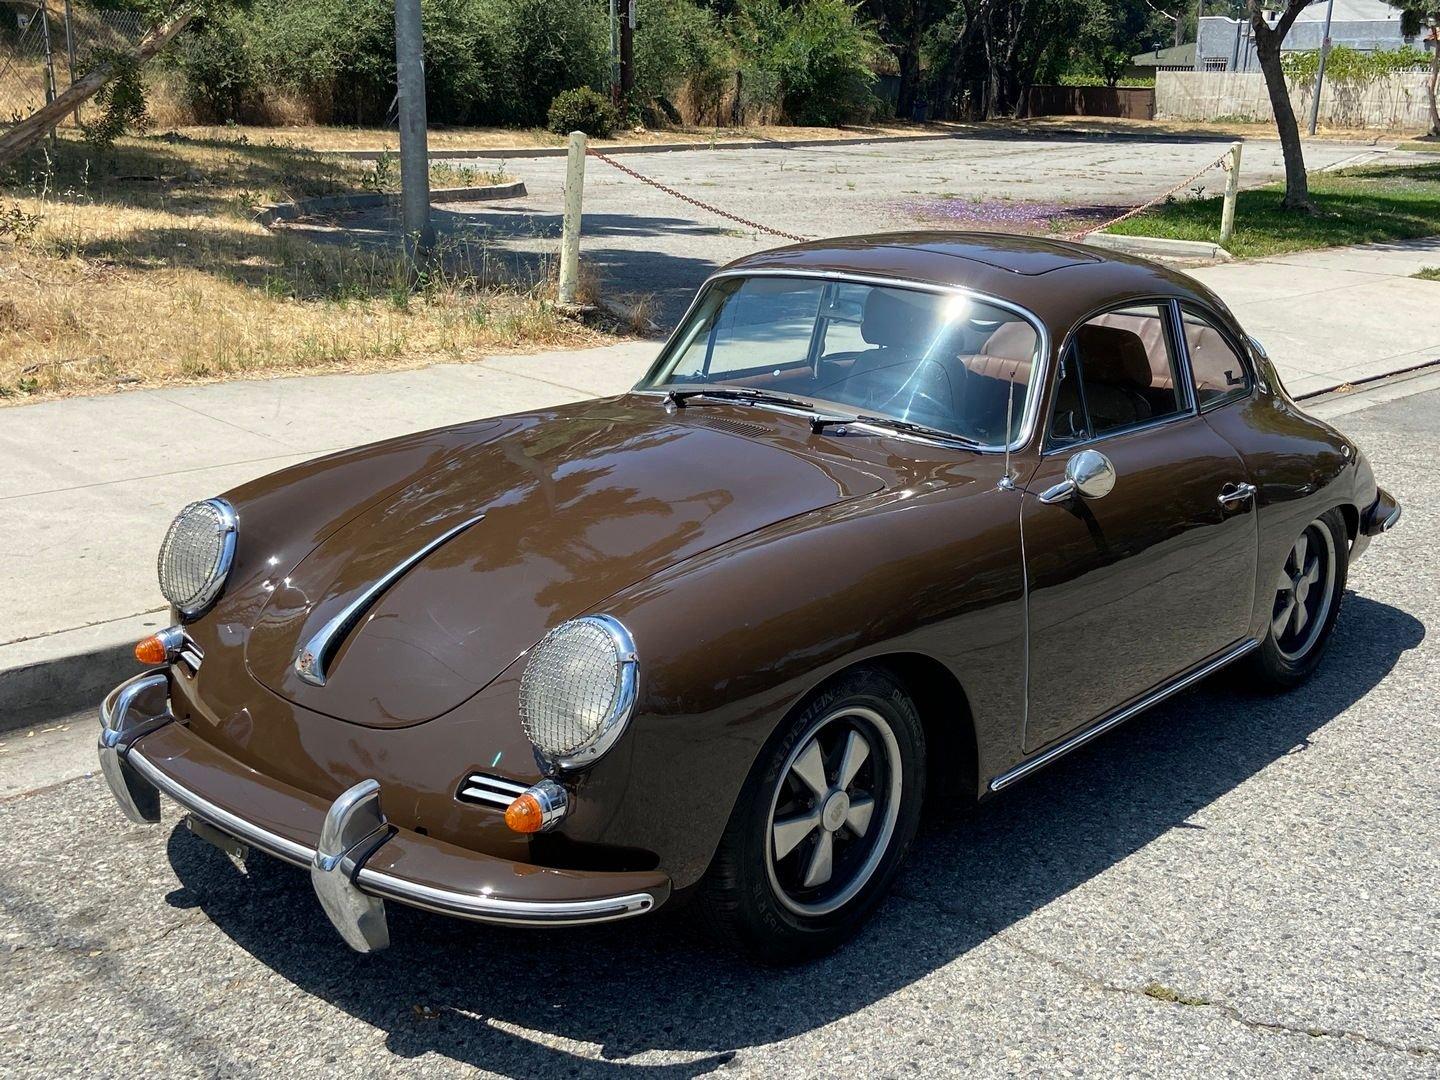 1964 Porsche 356B Sunroof Coupe